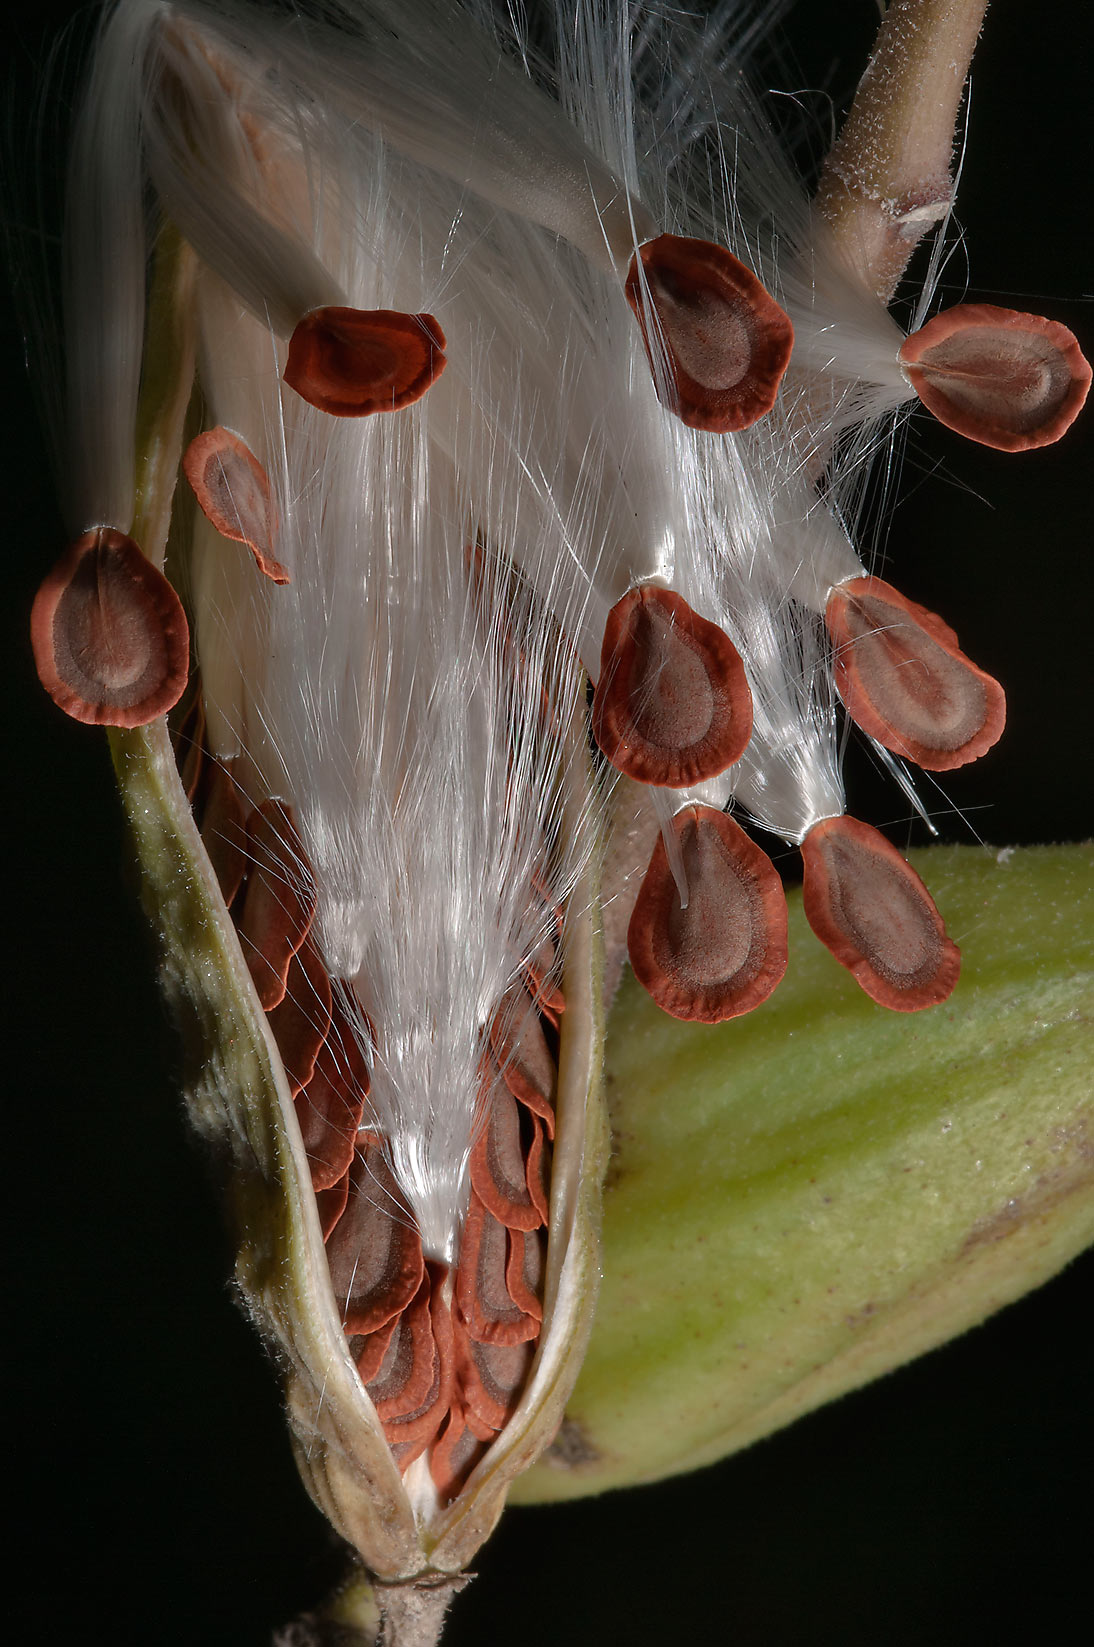 Tuft of fluff of milkweed seeds in Washington-on...State Historic Site. Washington, Texas